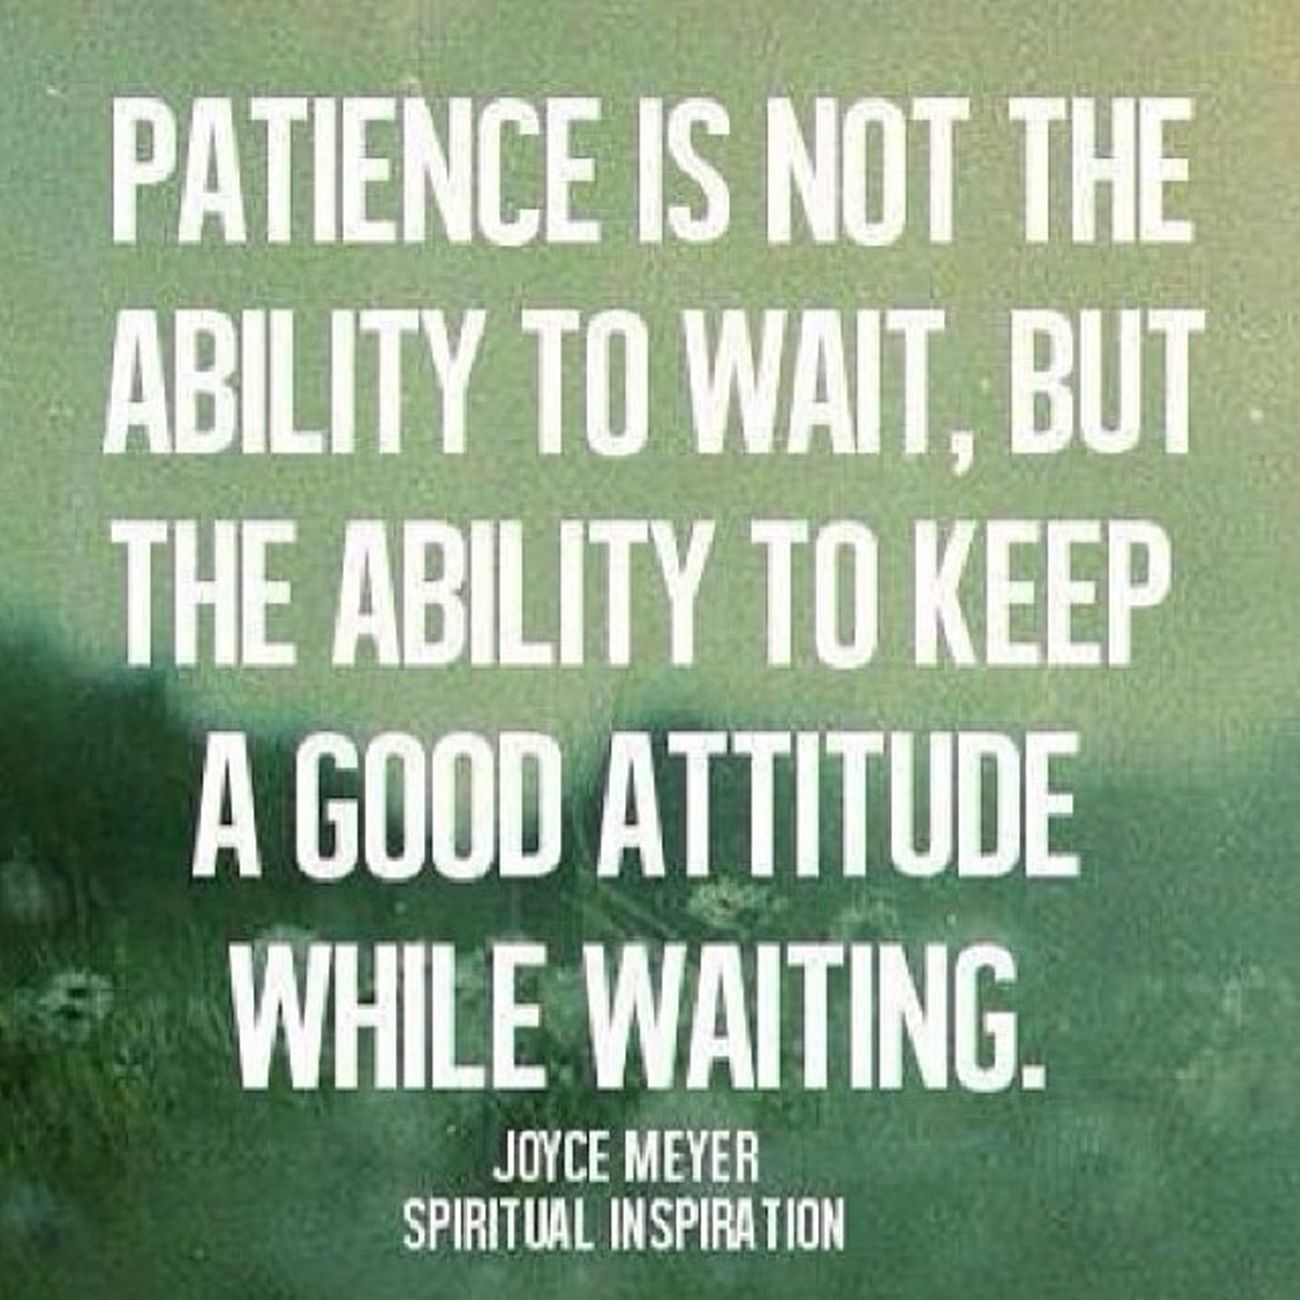 Patience is not the ability to wait, but the ability to keep a good attitude while waiting Shouldbecommonsence Gentleman  Respect Staypositive persevere jimbosports livelife @jimbosportswebsite